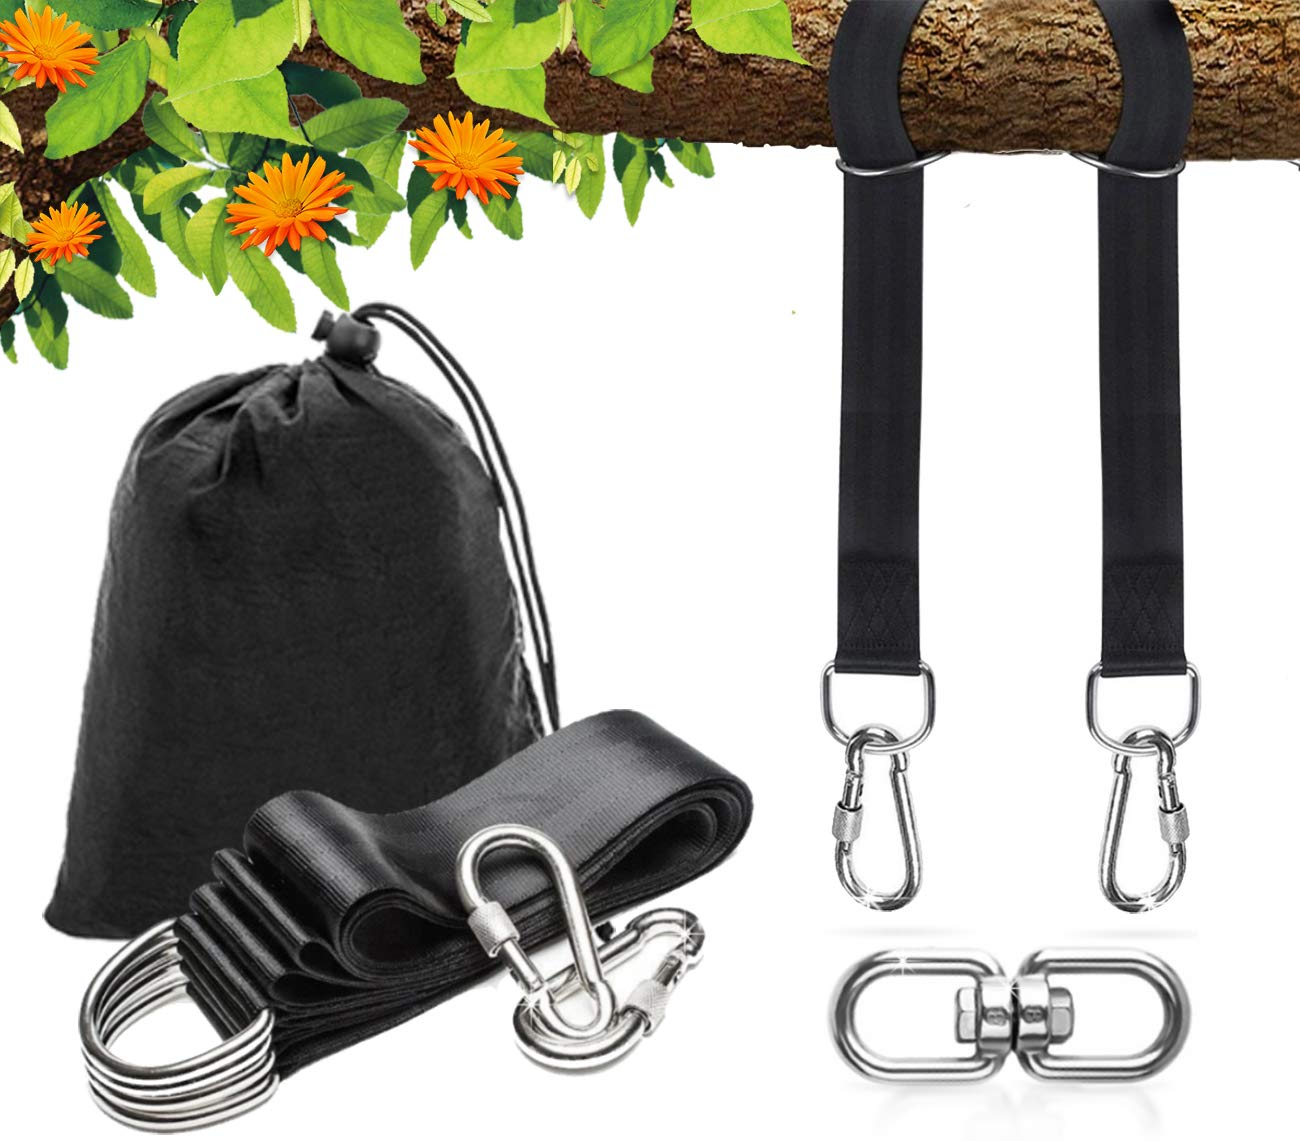 SIMBILA Tree Swing Hanging Straps Kit Holds 2200 lbs,Two Straps 5ft Extra Long & Ultra Safe - Includes Carabiner with Safety Lock Mechanism and 360 Degrees Swivel - SGA Certified - Easy Fast Install